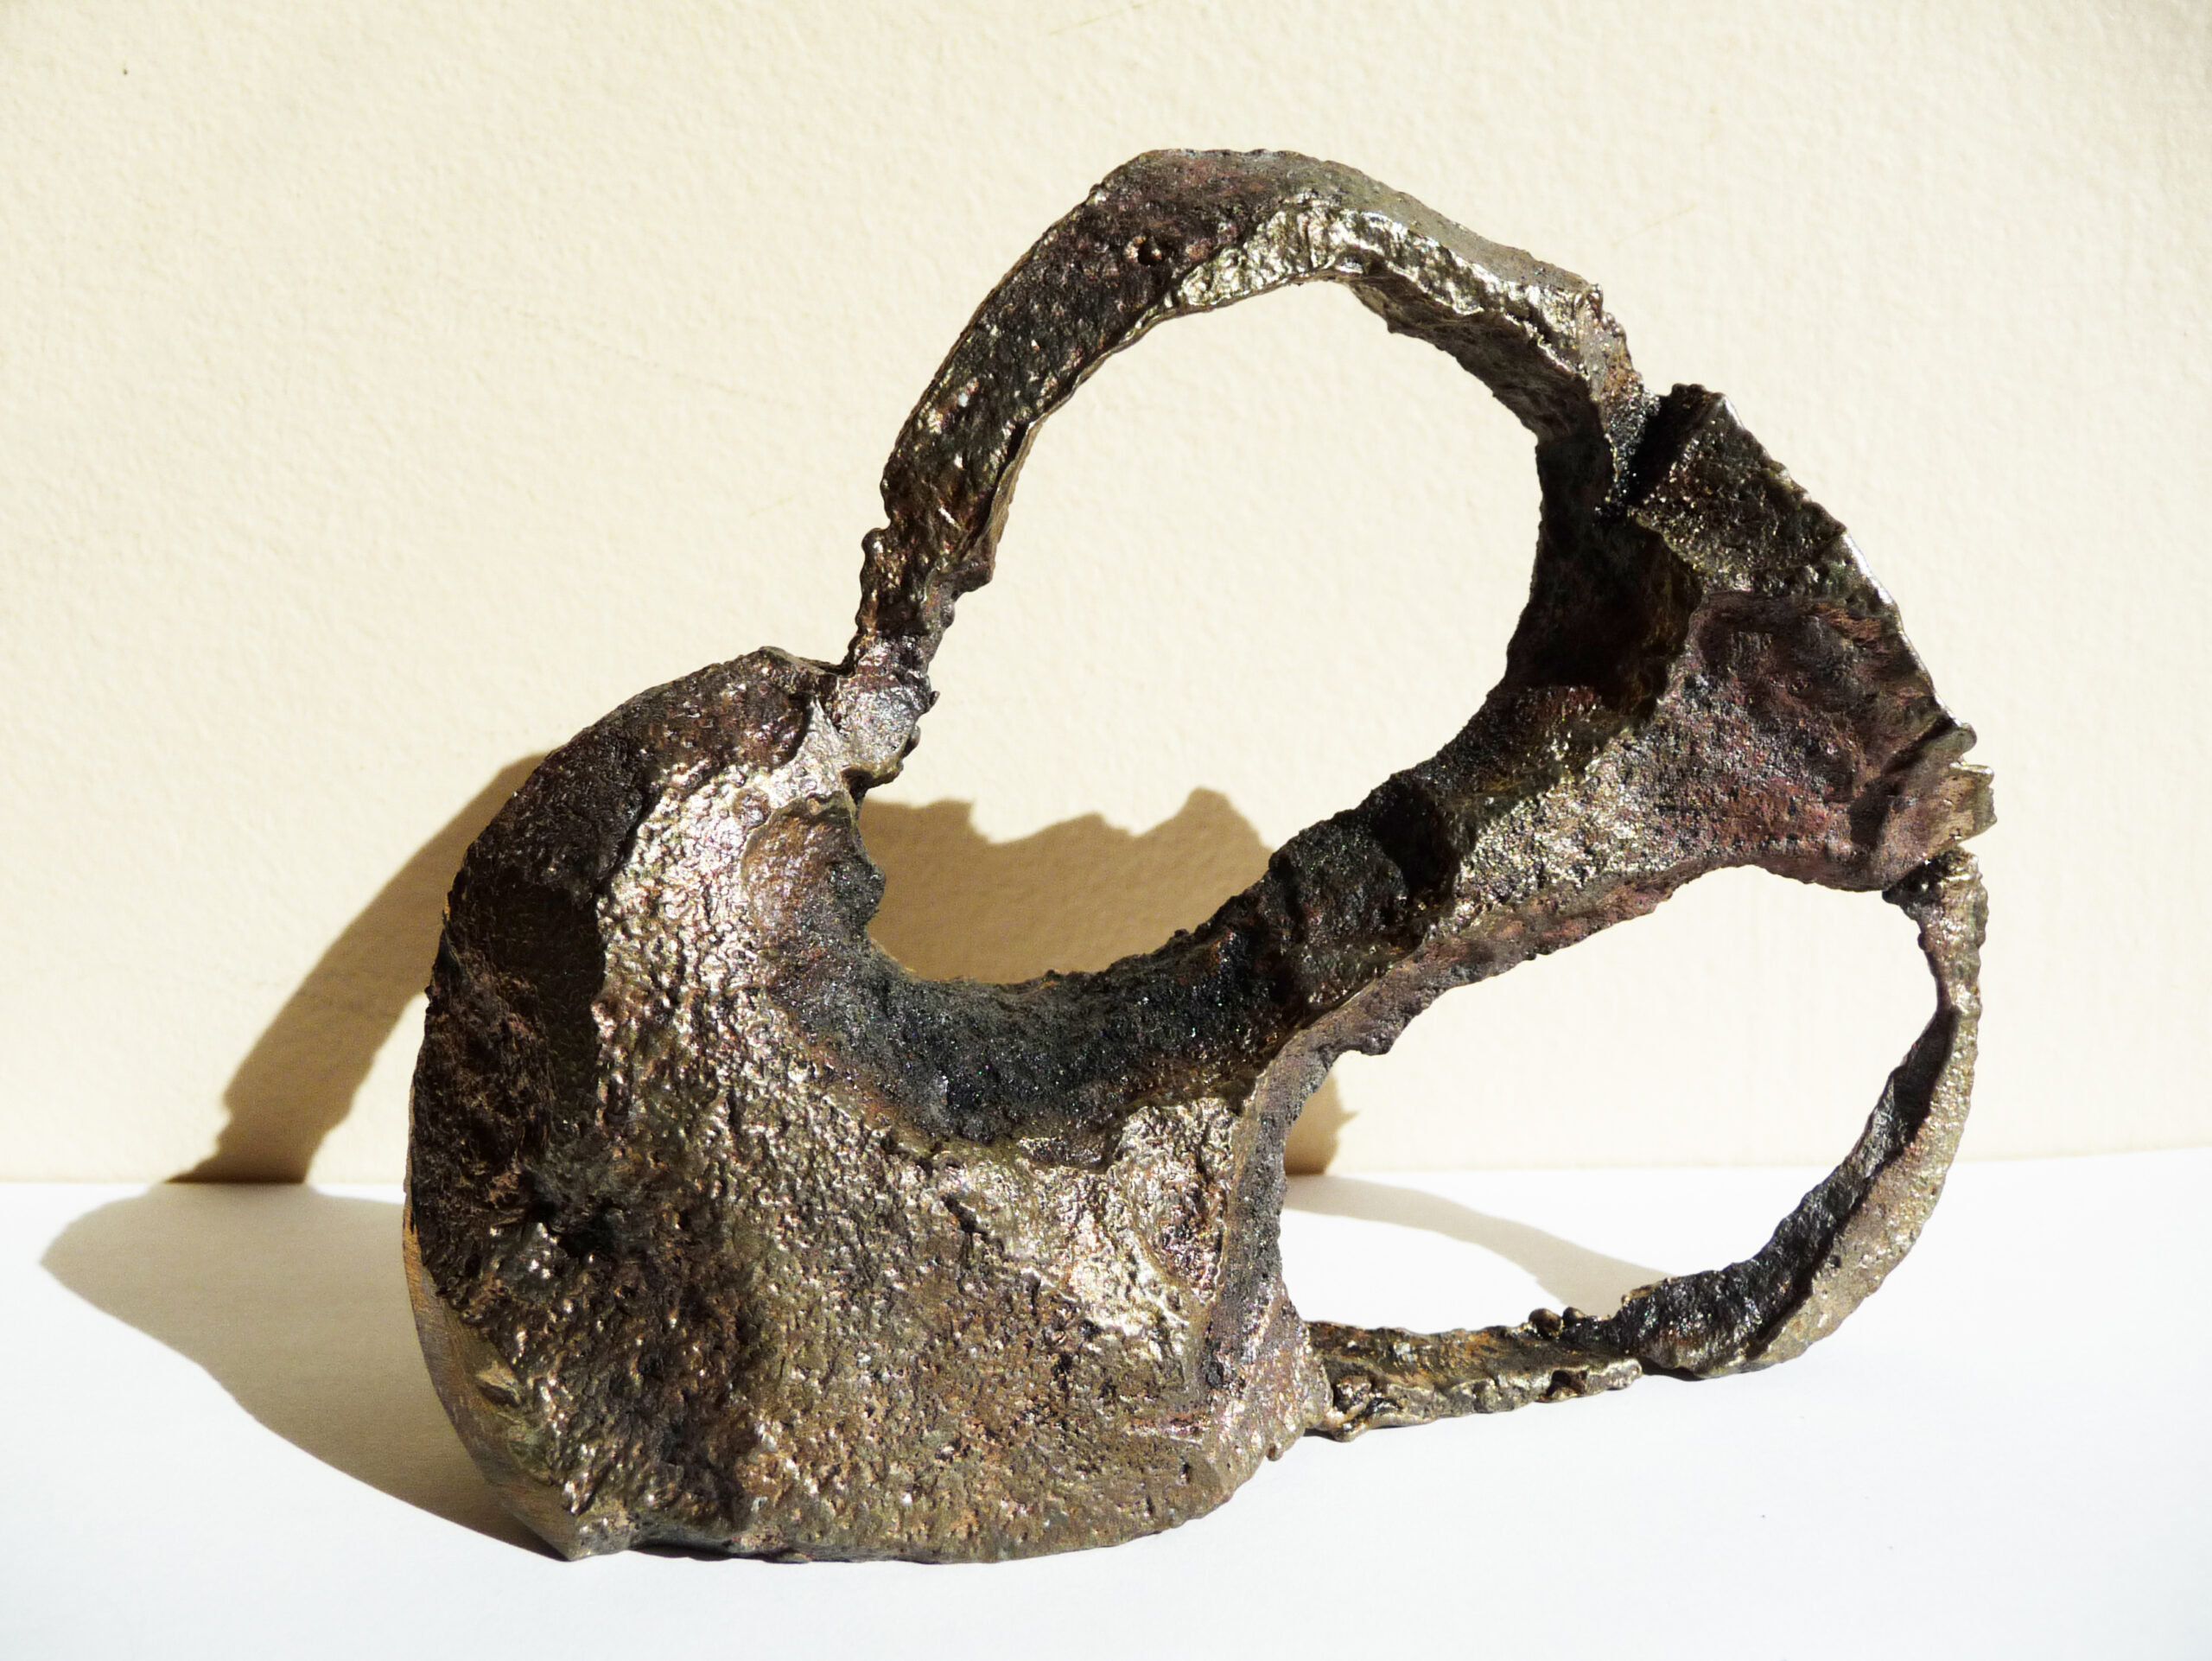 Small bronze sculpture shaped like an abstract vase by artist Carrie Ruddick.